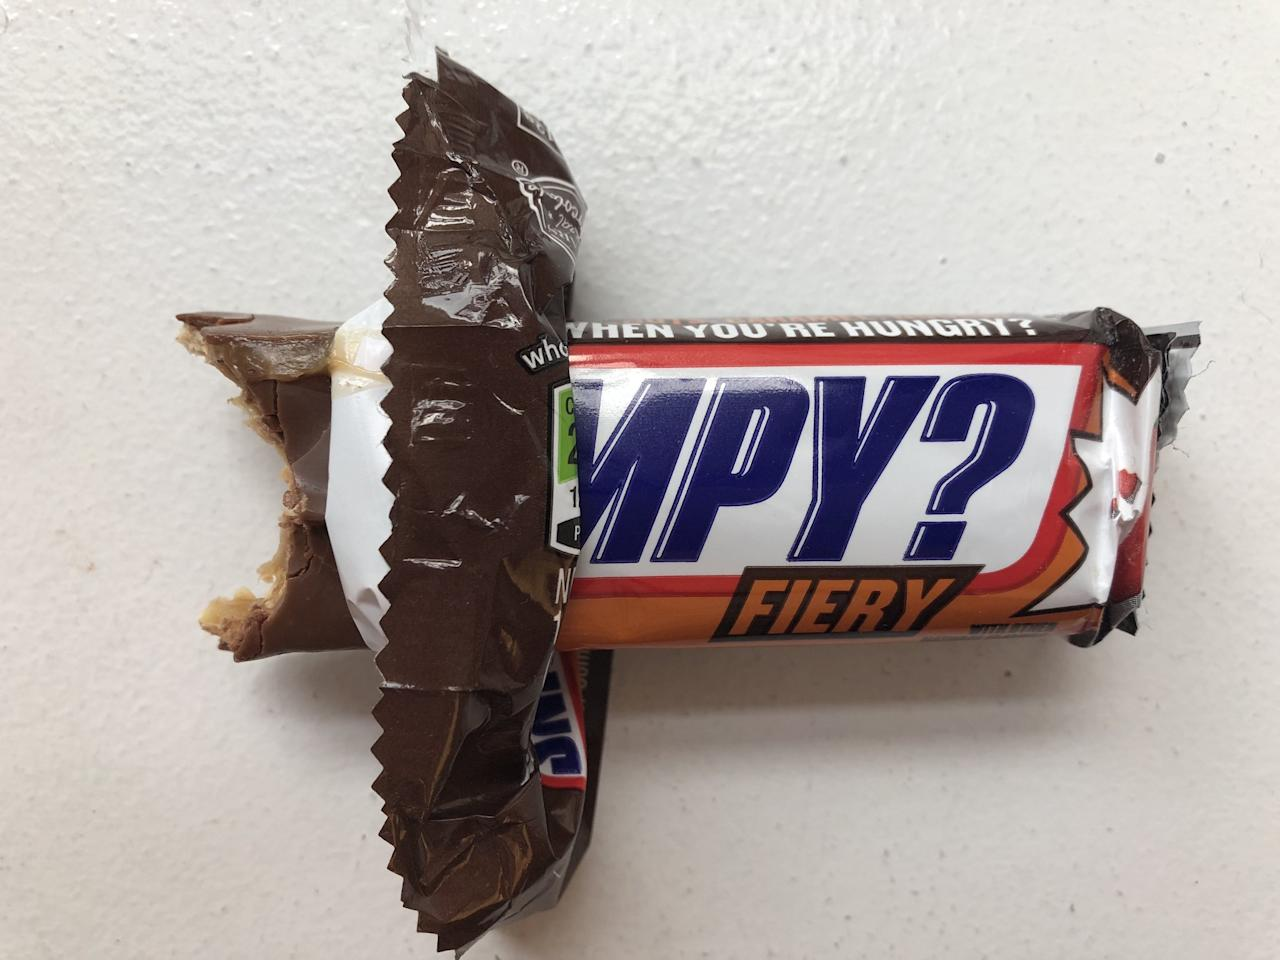 Get out your calendars, candy fans, because Snickers is going to have three new flavor options next Summer! As part of Snickers's Hunger Bar collection (you know - the bars with sayings on the wrappers about who you are when you're hungry), the new flavors include Fiery, Espresso, and Salty & Sweet.